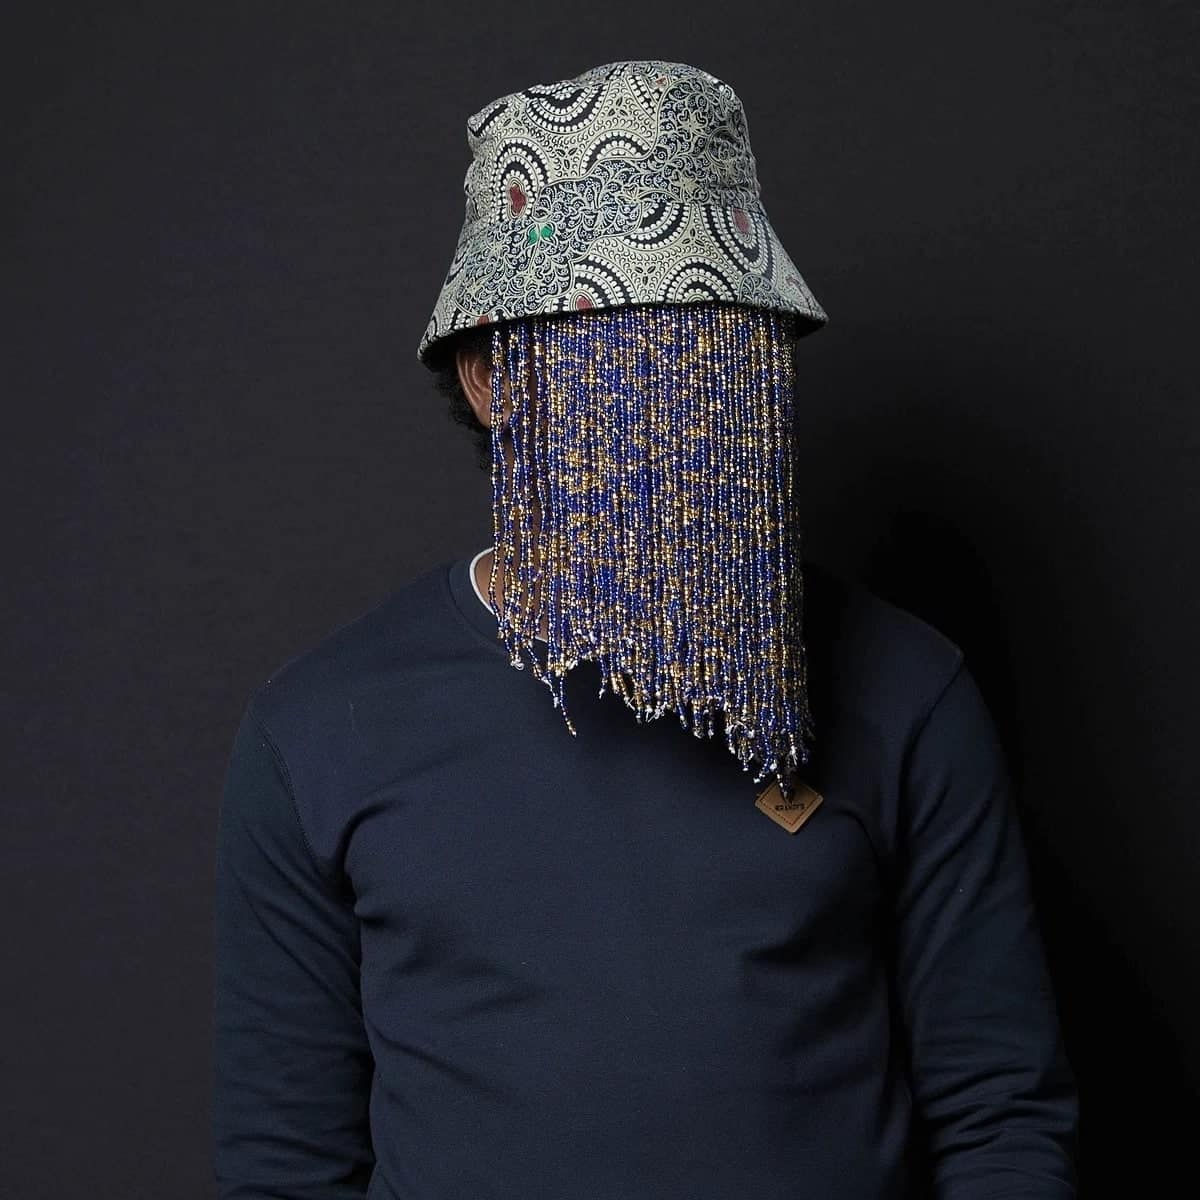 A man with a covered face